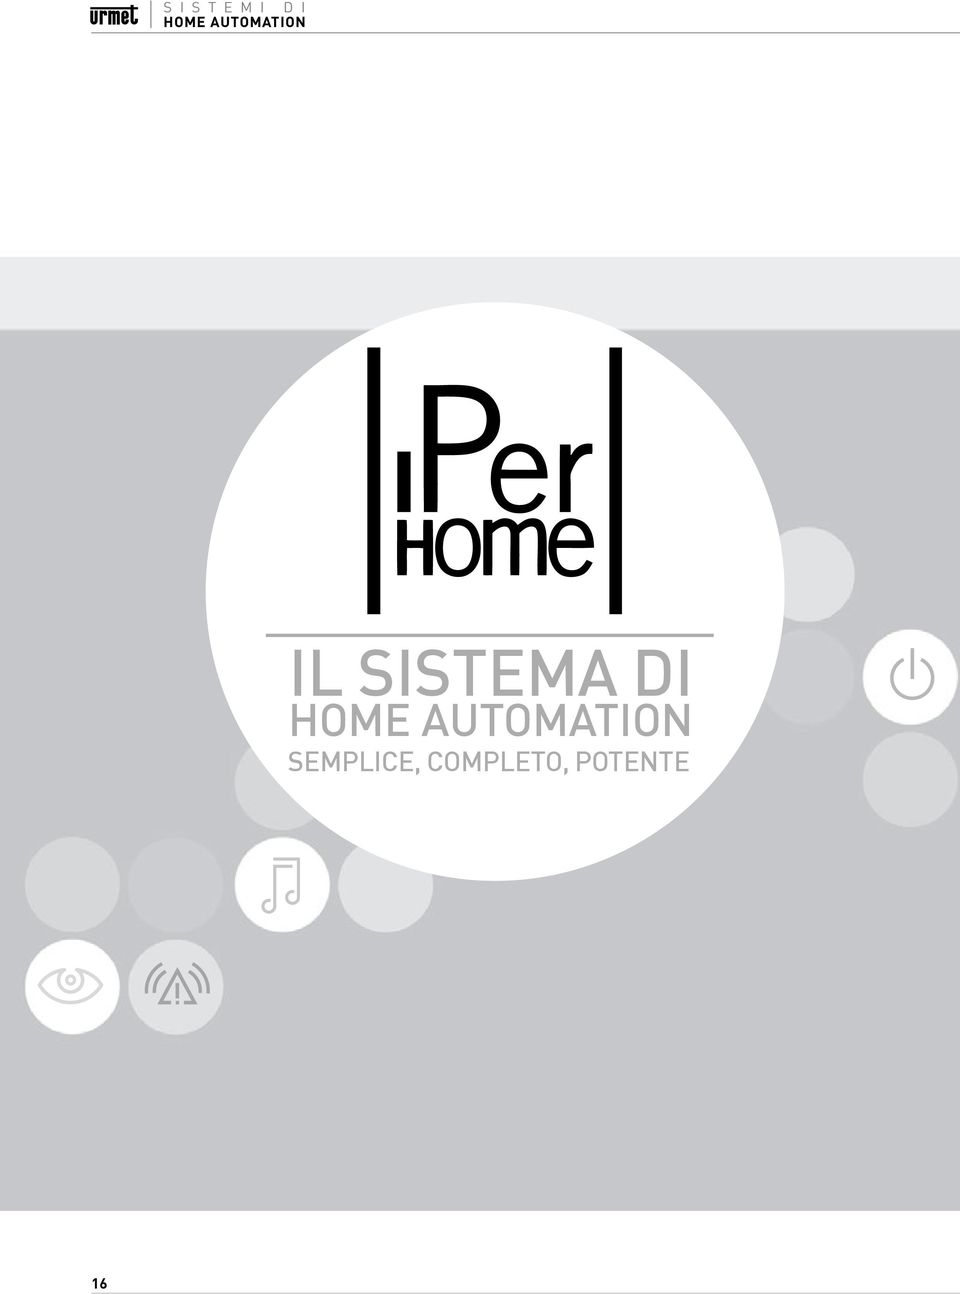 DI HOME AUTOMATION